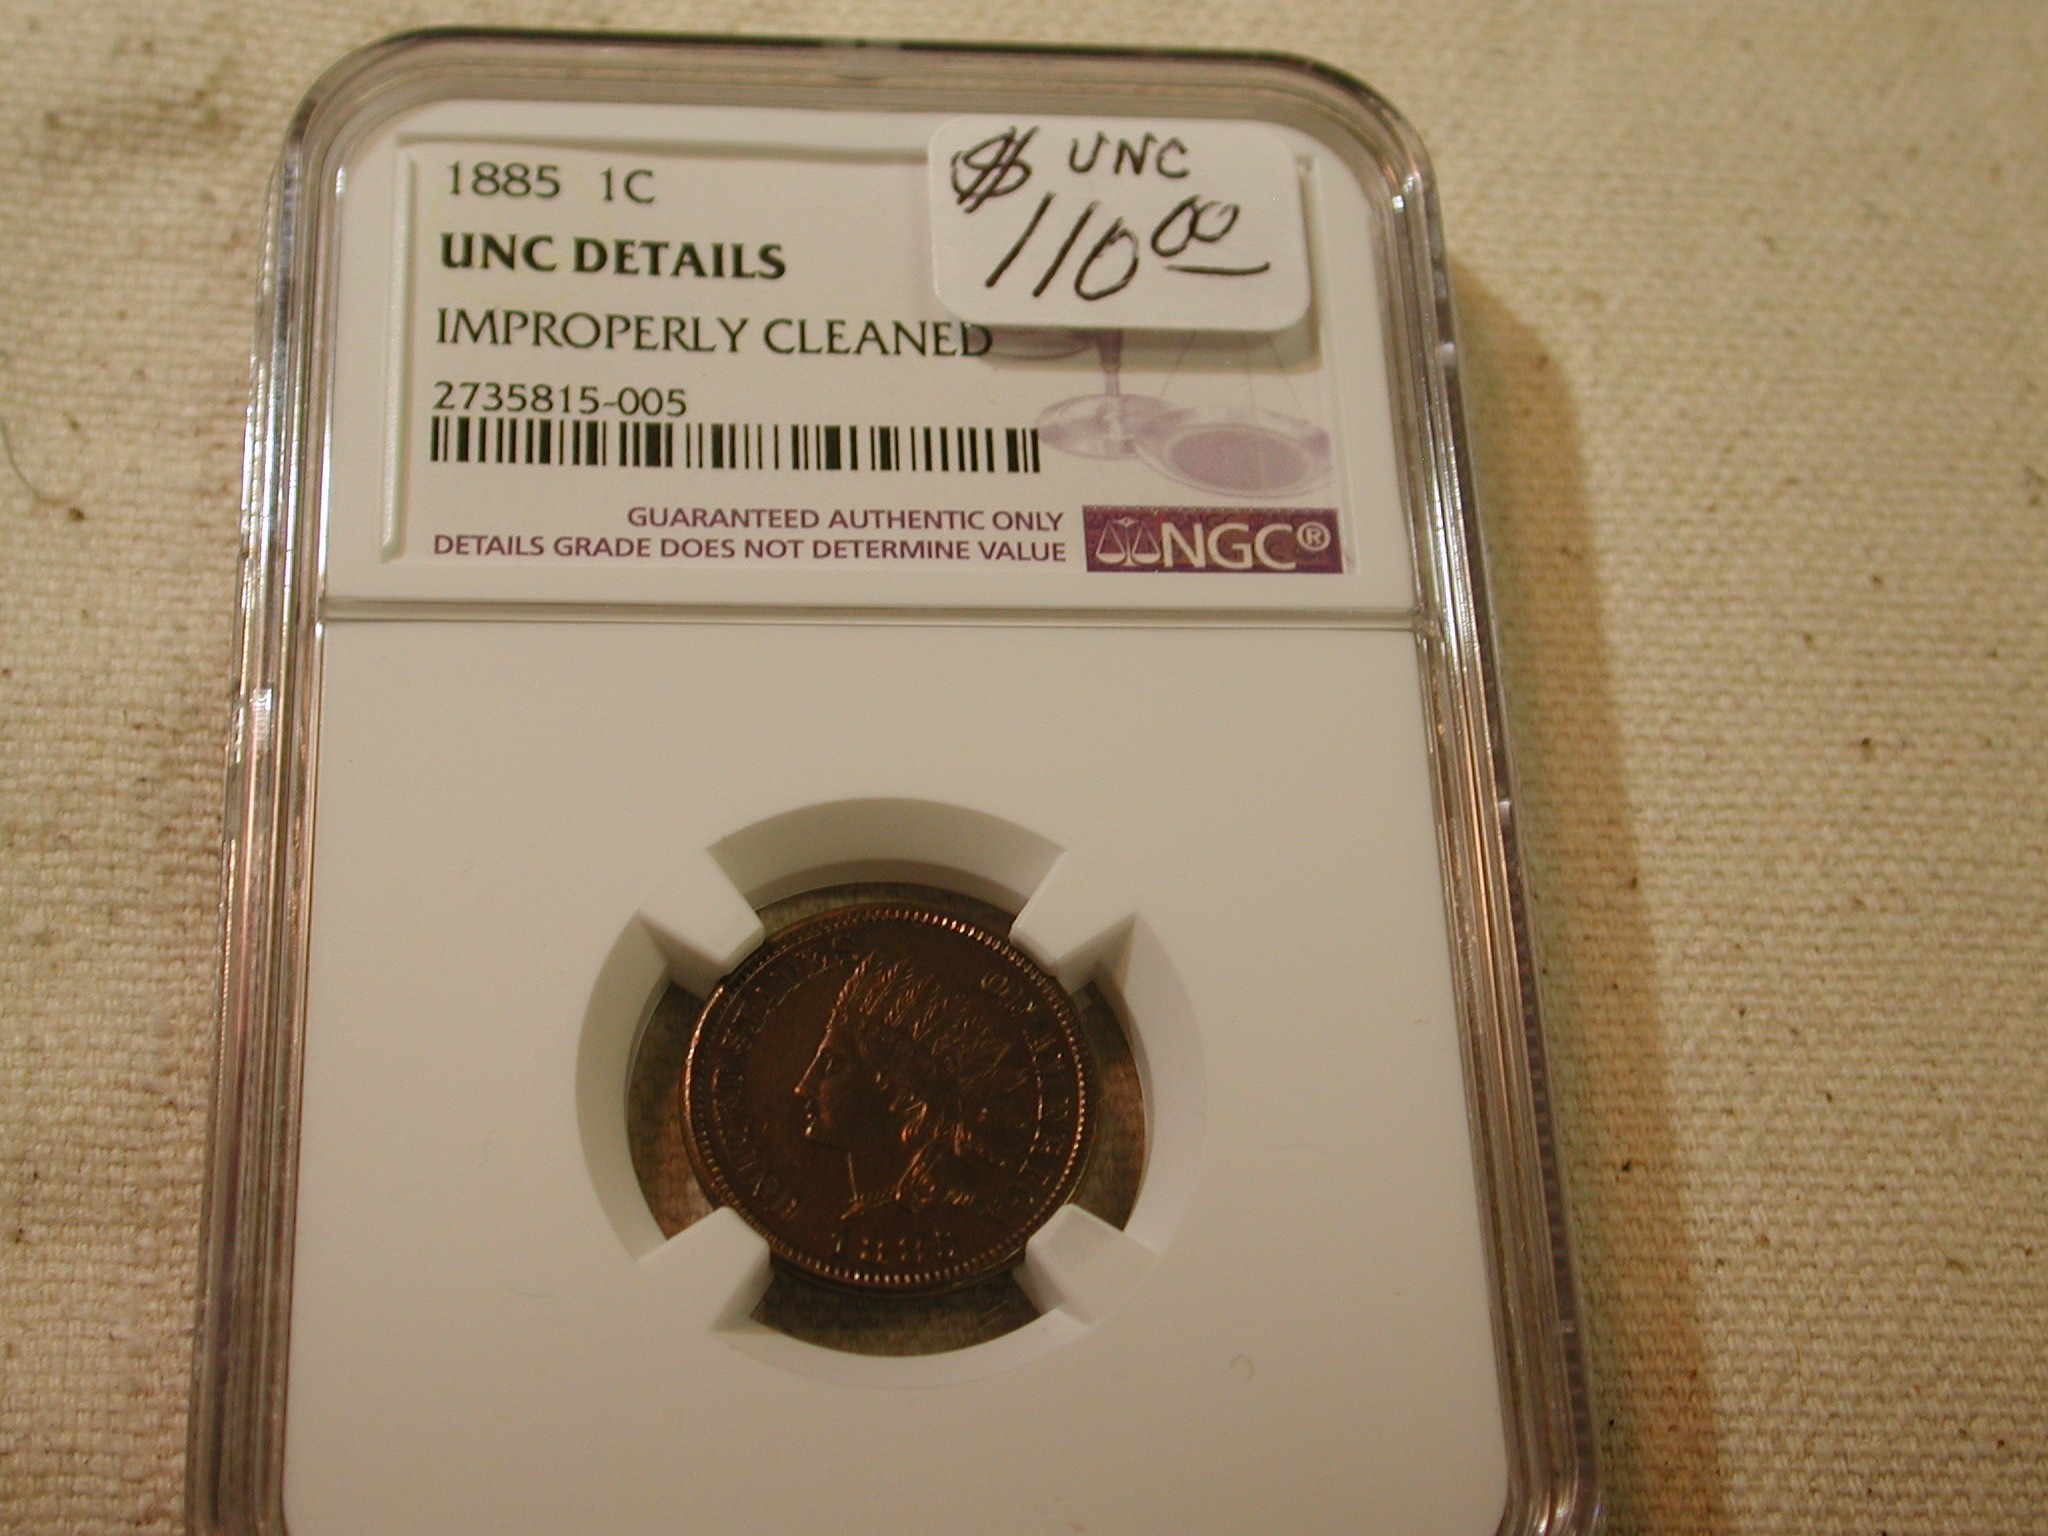 1885 1C UNC Details Improperly Cleaned NGC